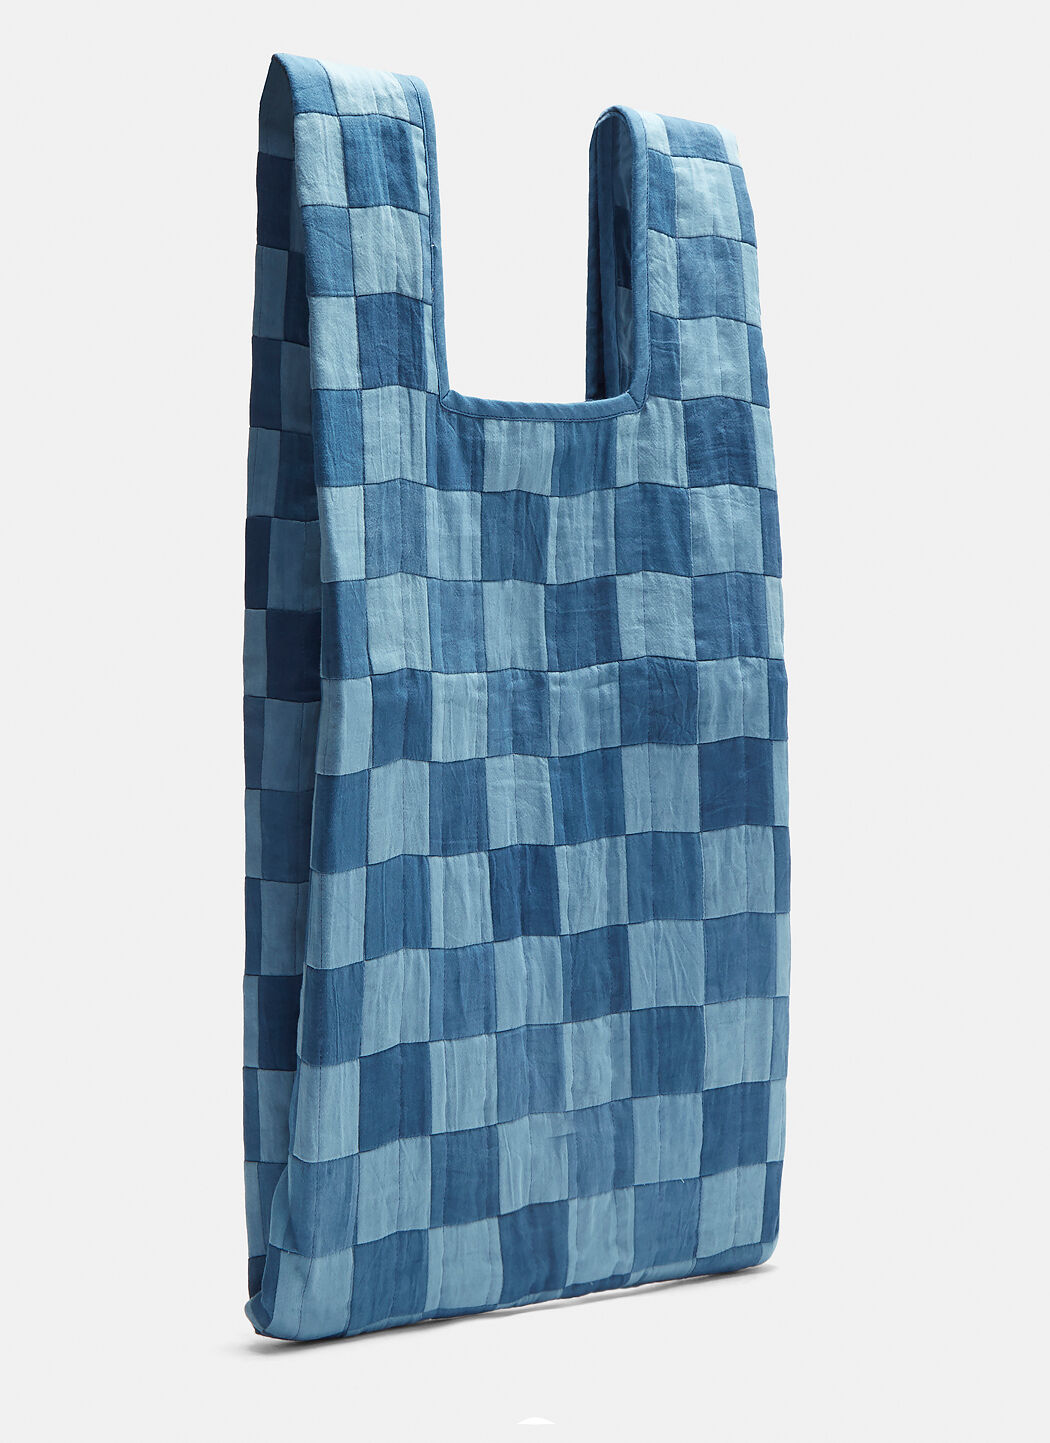 Patchwork Bag Story mfg. PwPnrdvFXo